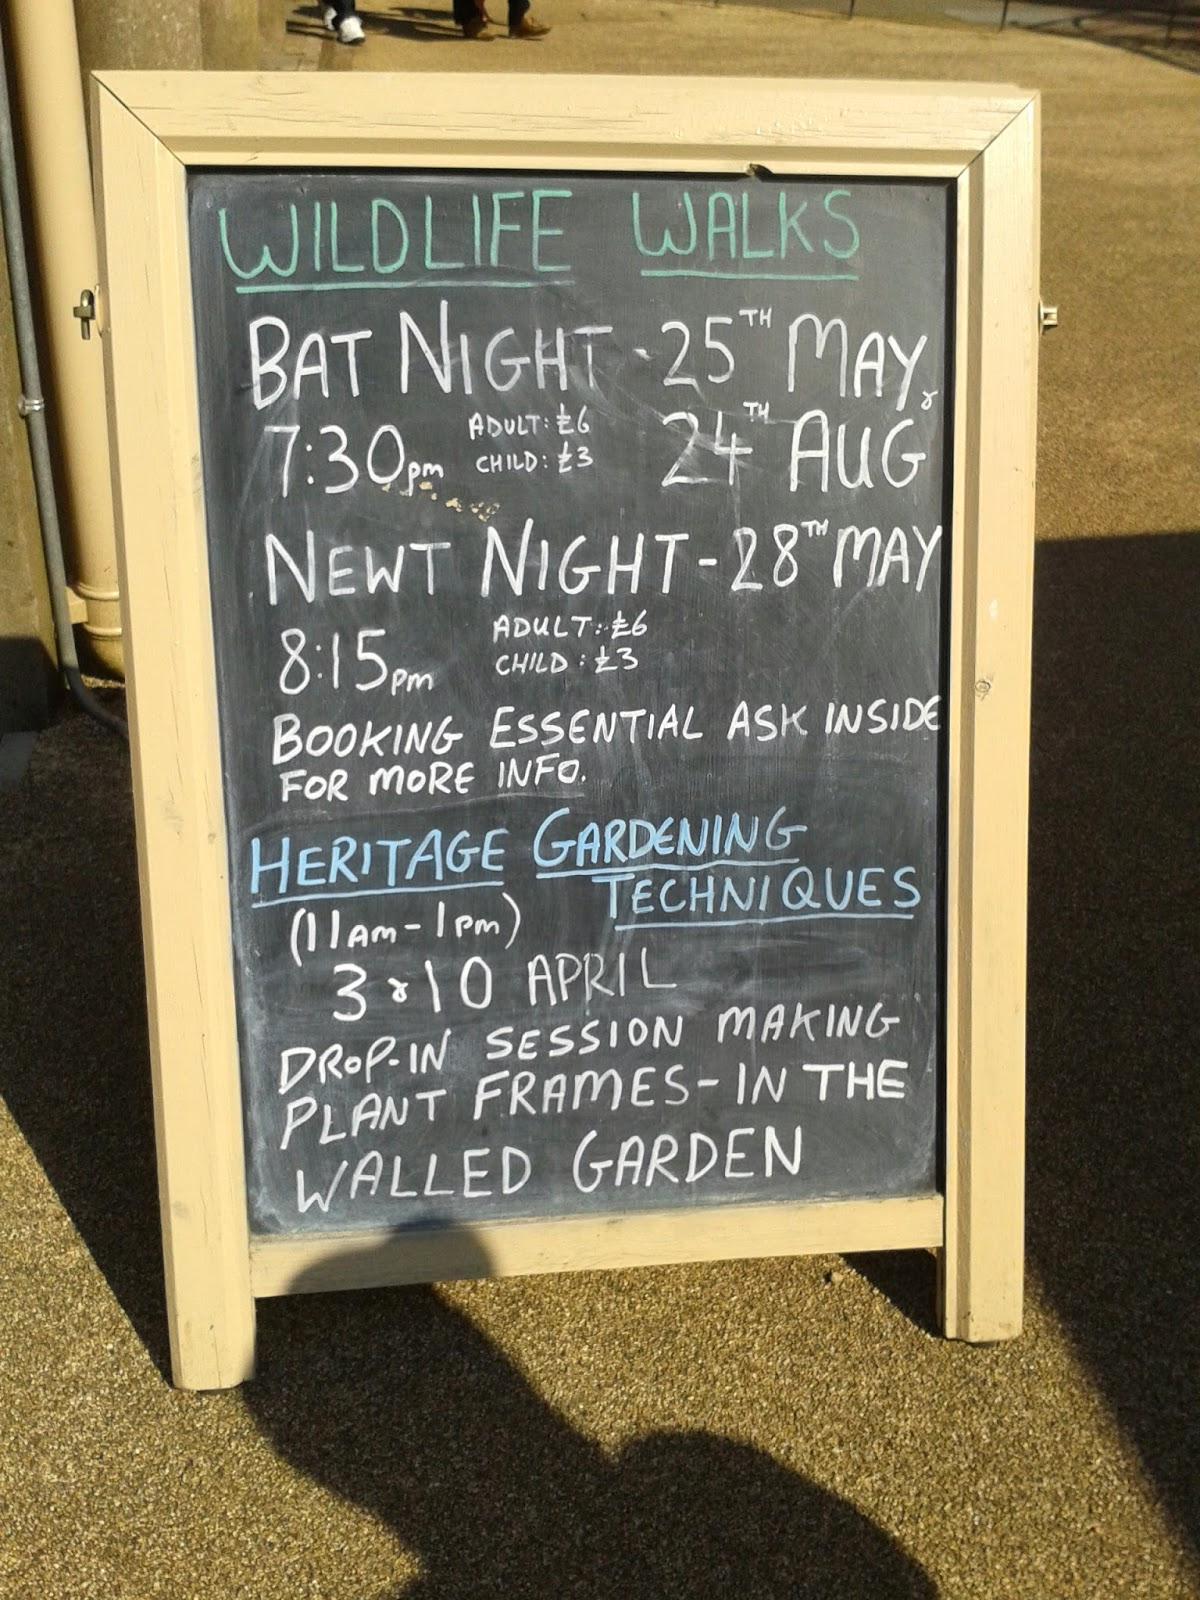 Forthcoming events board, Dyffryn Gardens